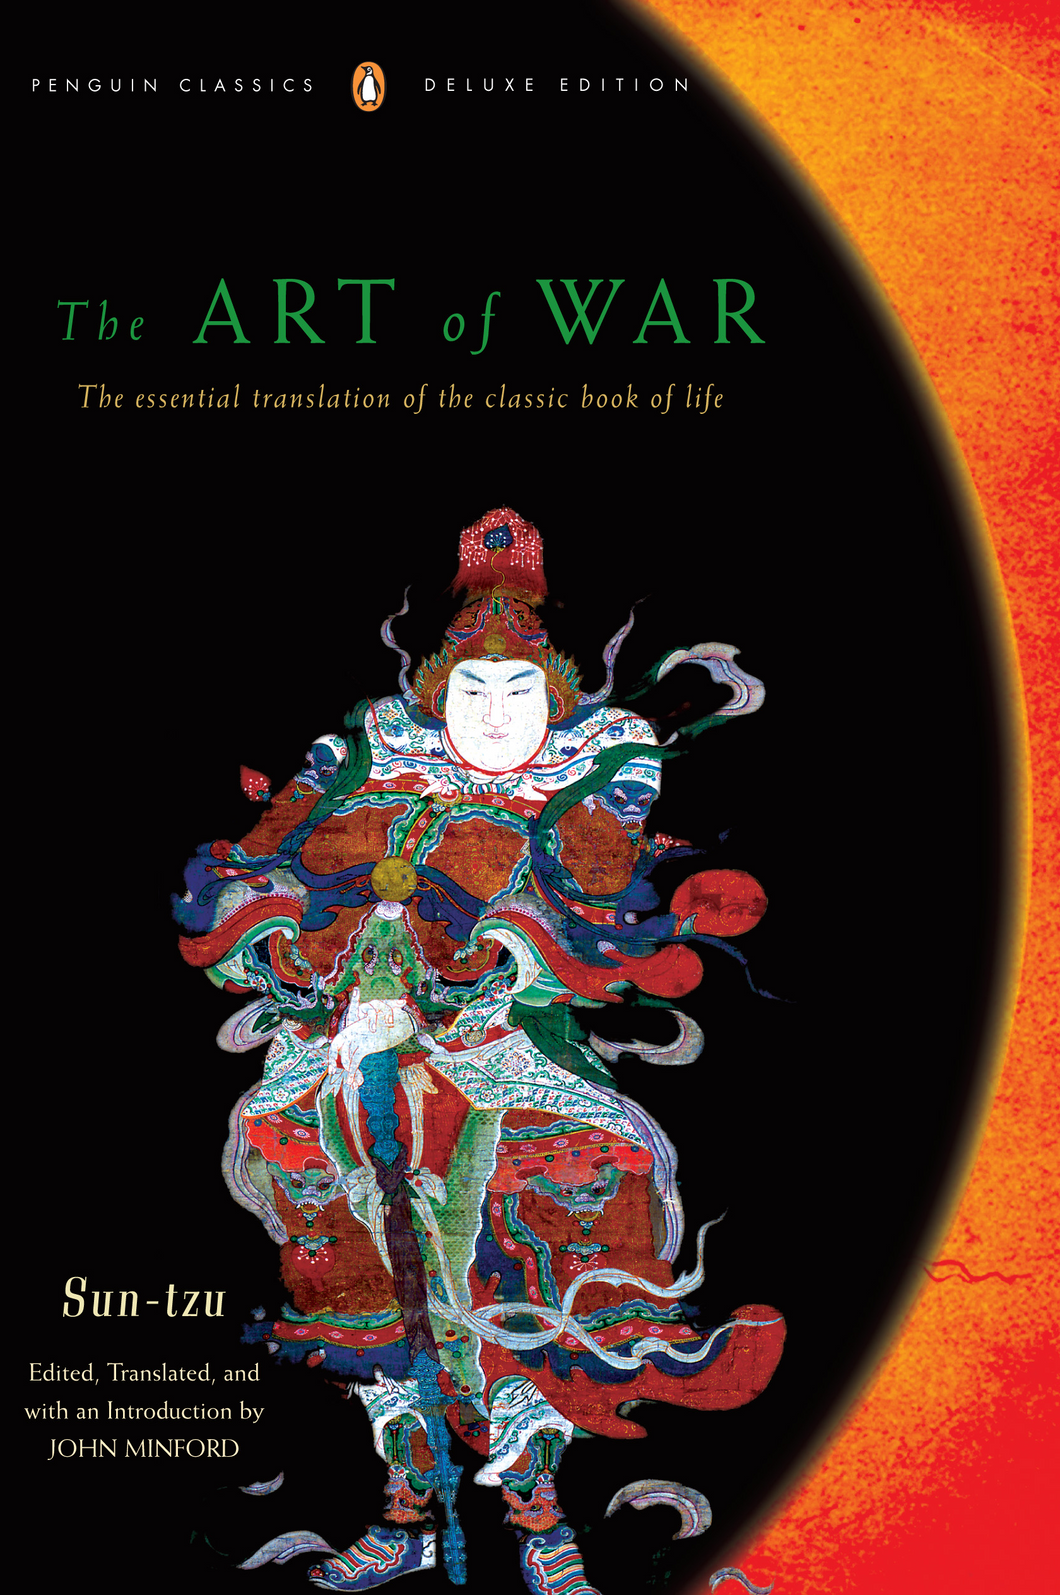 The Art of War THE ESSENTIAL TRANSLATION OF THE CLASSIC BOOK OF LIFE (PENGUIN CLASSICS DELUXE EDITION) By SUN-TZU Introduction by John Minford Translated by John Minford